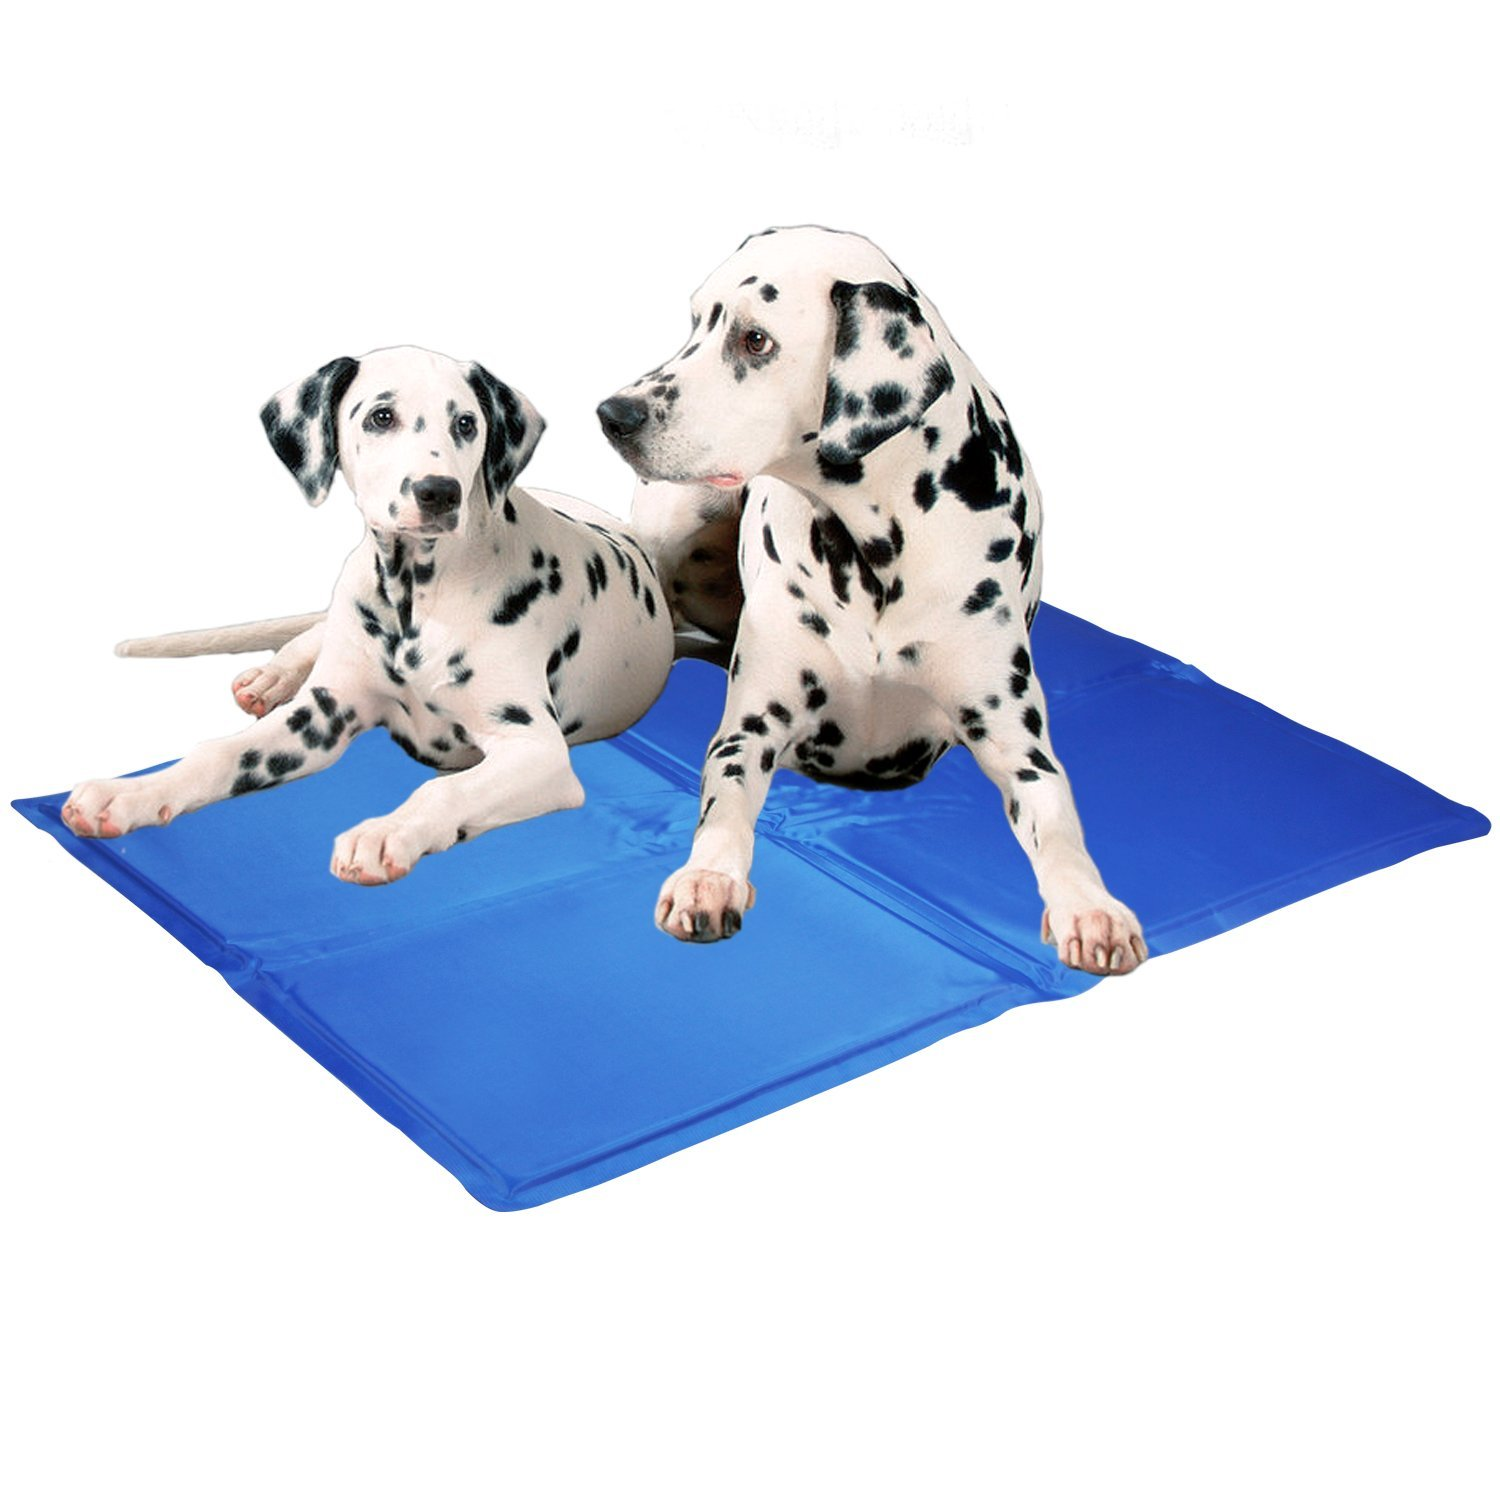 Kingstar Pet Chilly Gel Mat, Premium Folding Soft Comfort Bed Self Cooling Pad for Dogs Cats Different sizes